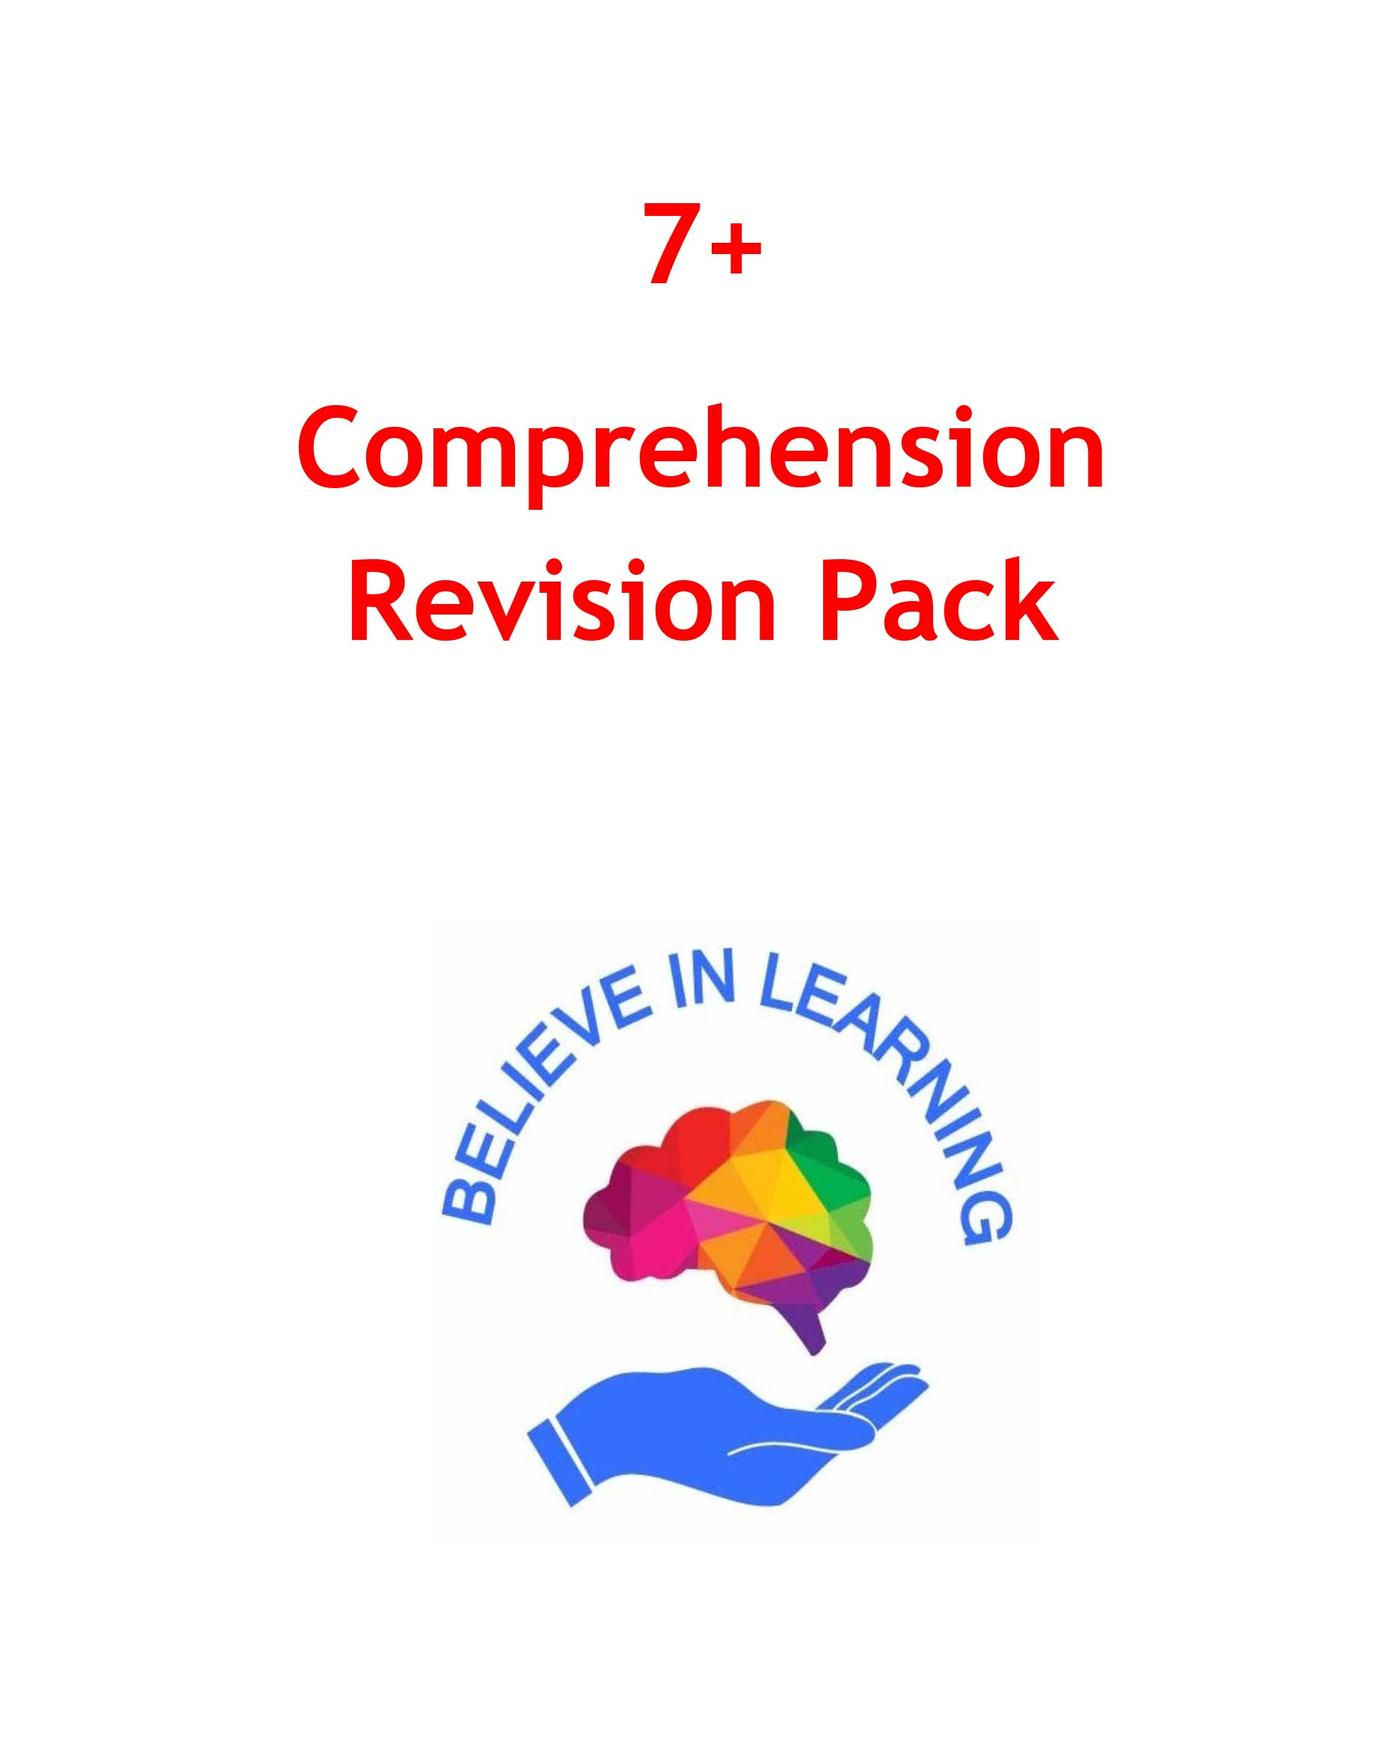 7+ Comprehension Revision Pack